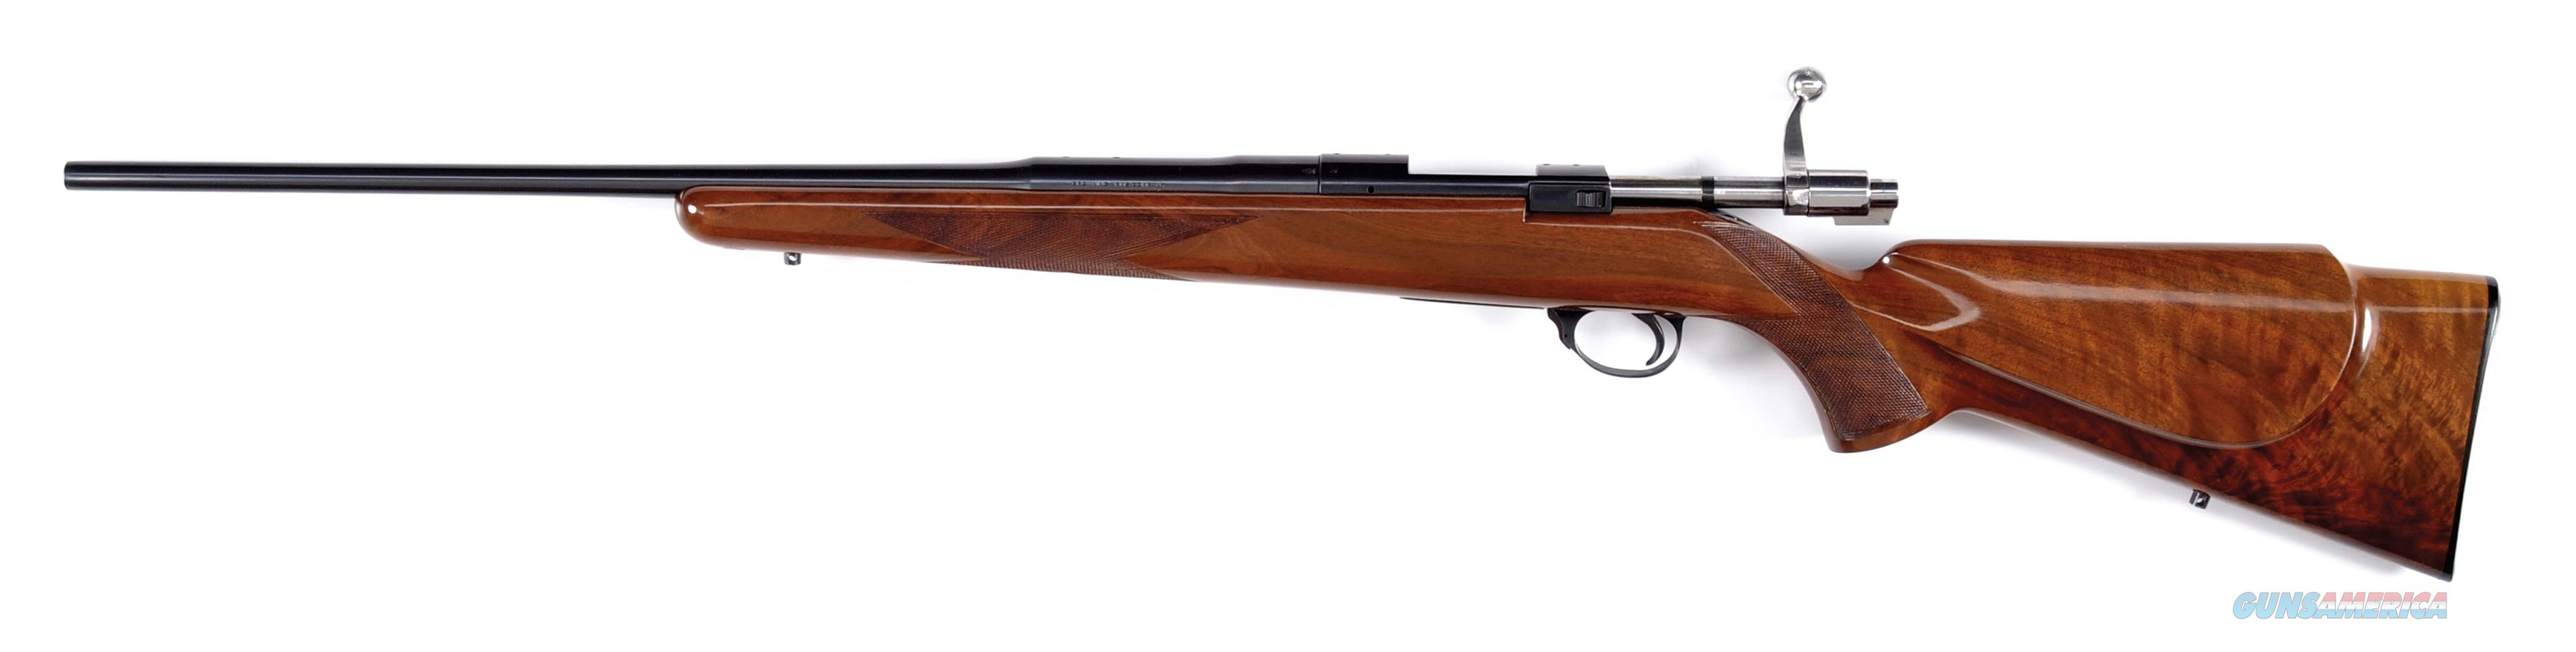 BROWNING SAFARI MODEL BOLT ACTION RIFLE WITH HIGHLY FIGURED CHECKERED STOCK .222 Cal   Guns > Rifles > Browning Rifles > Bolt Action > Hunting > Blue